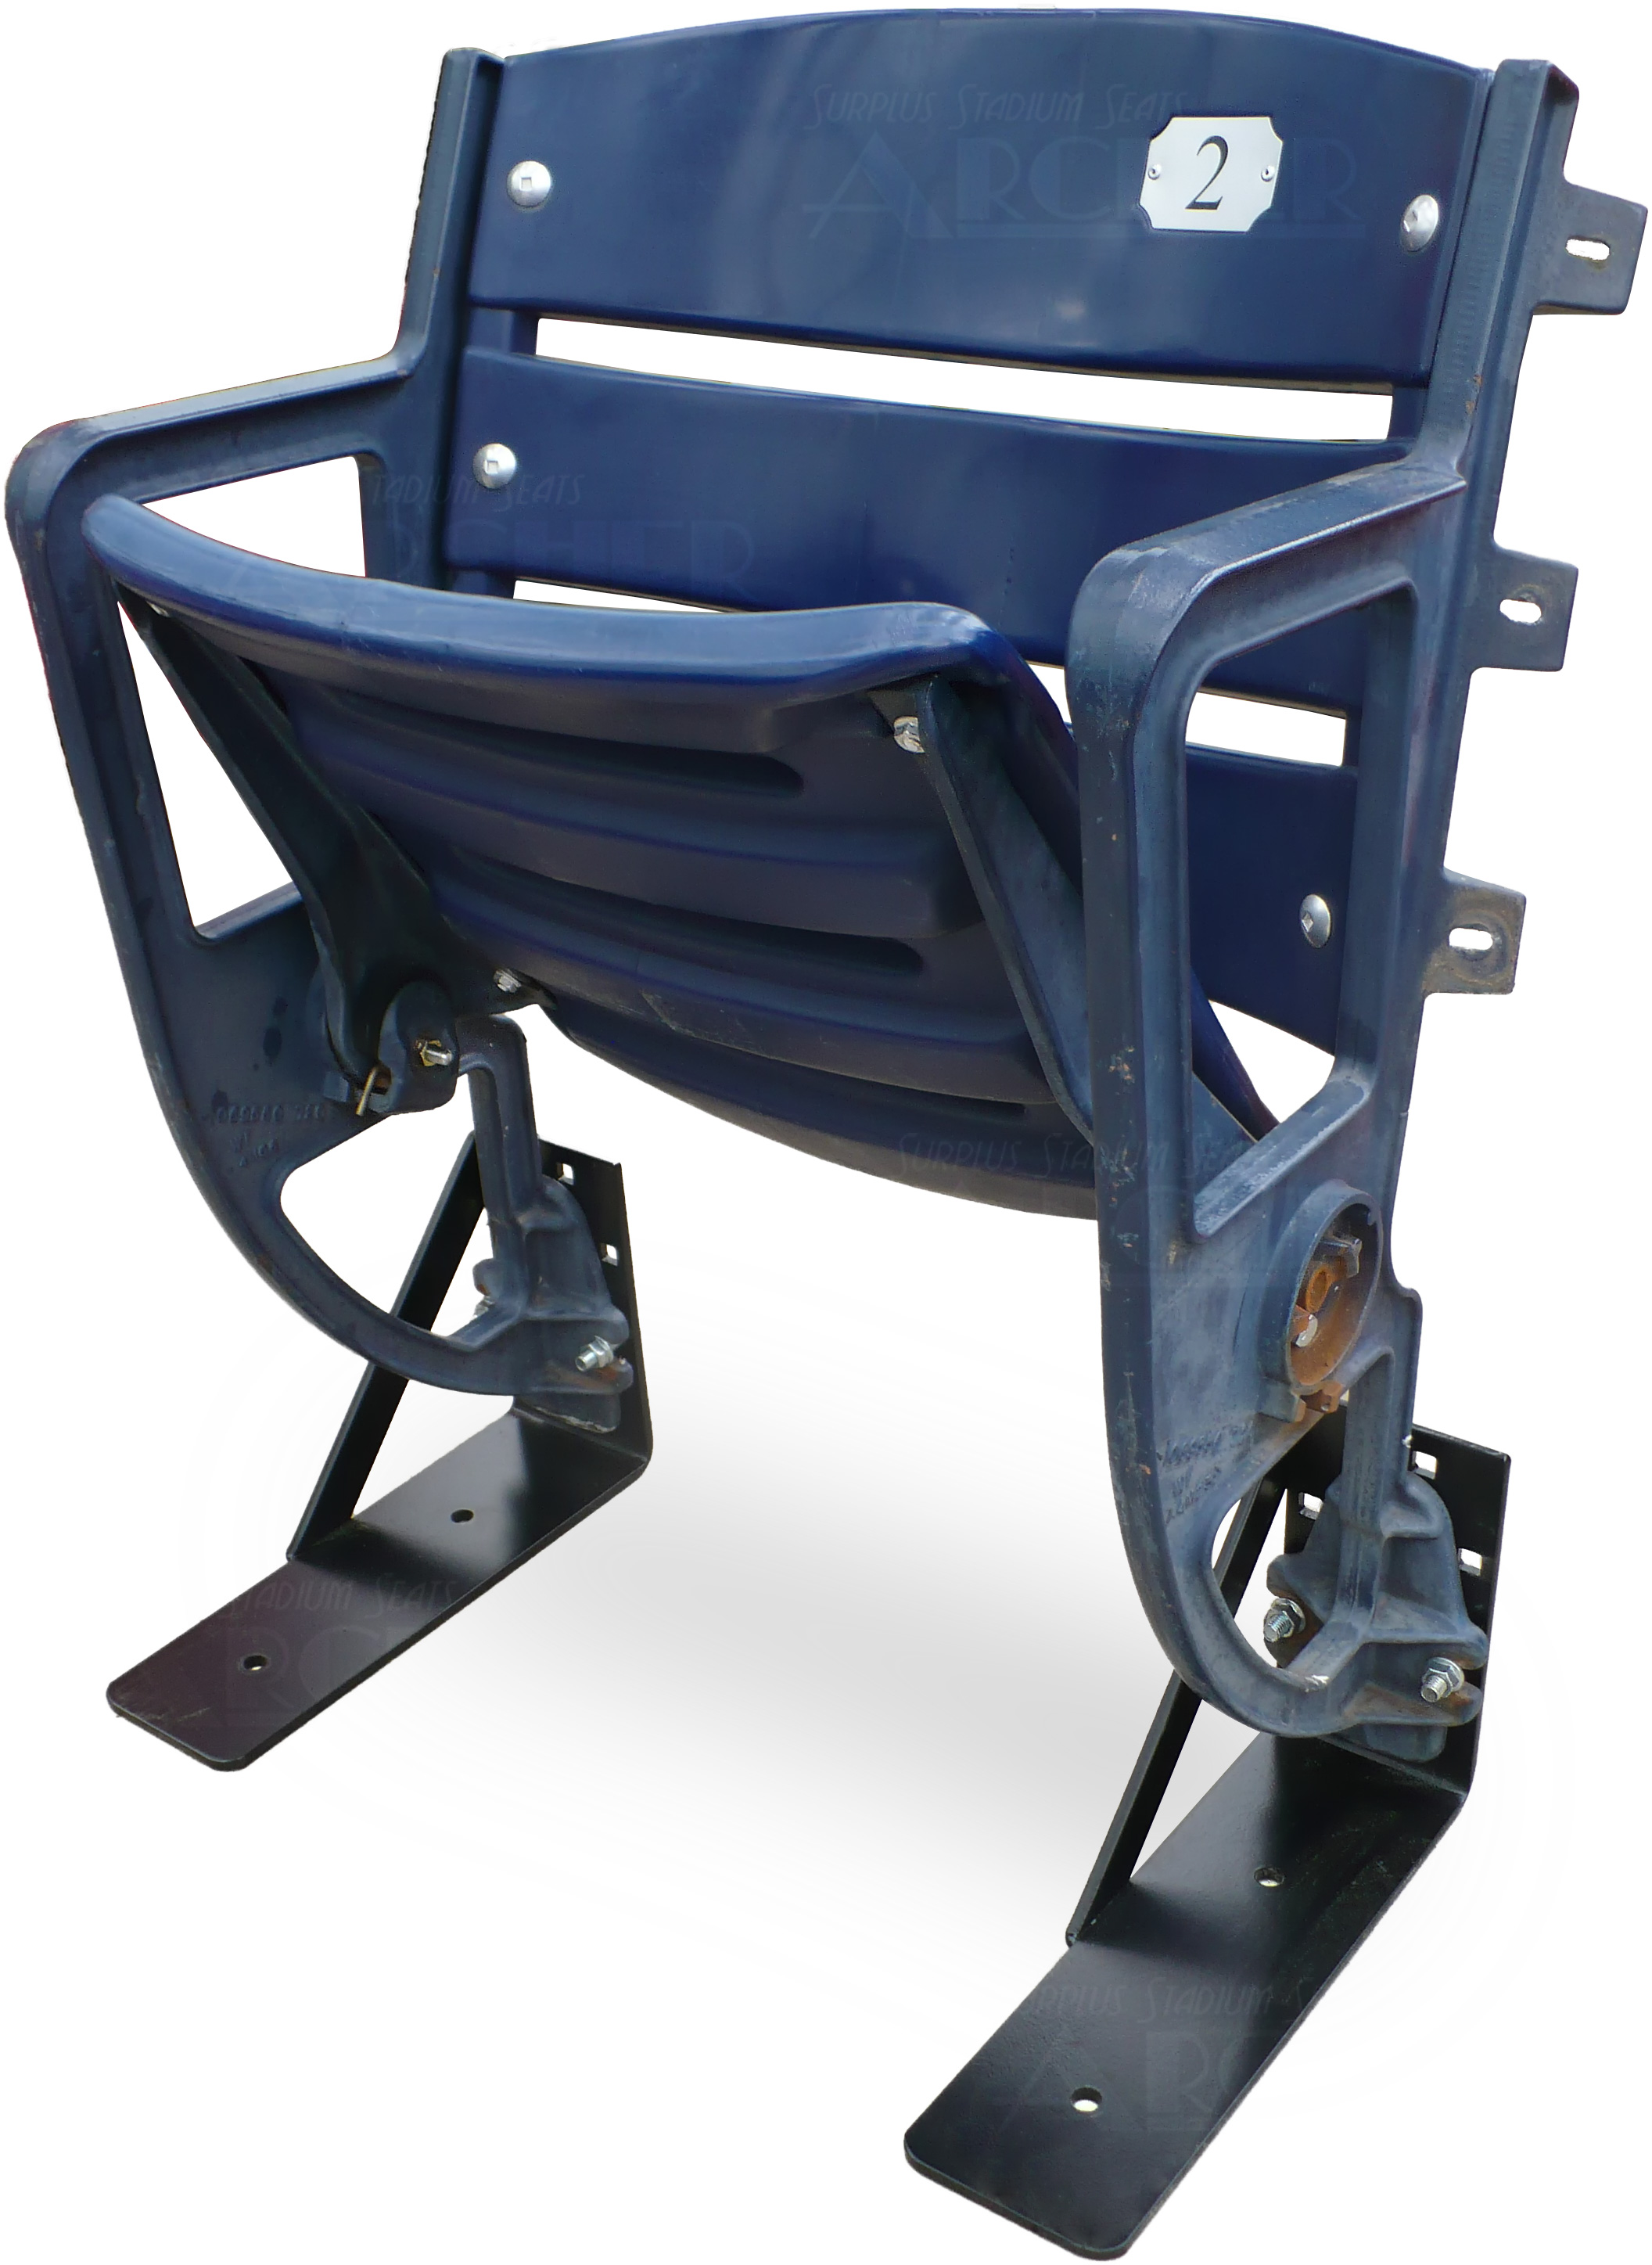 Modern Plastic Stadium Seats Archer Seatingarcher Seating